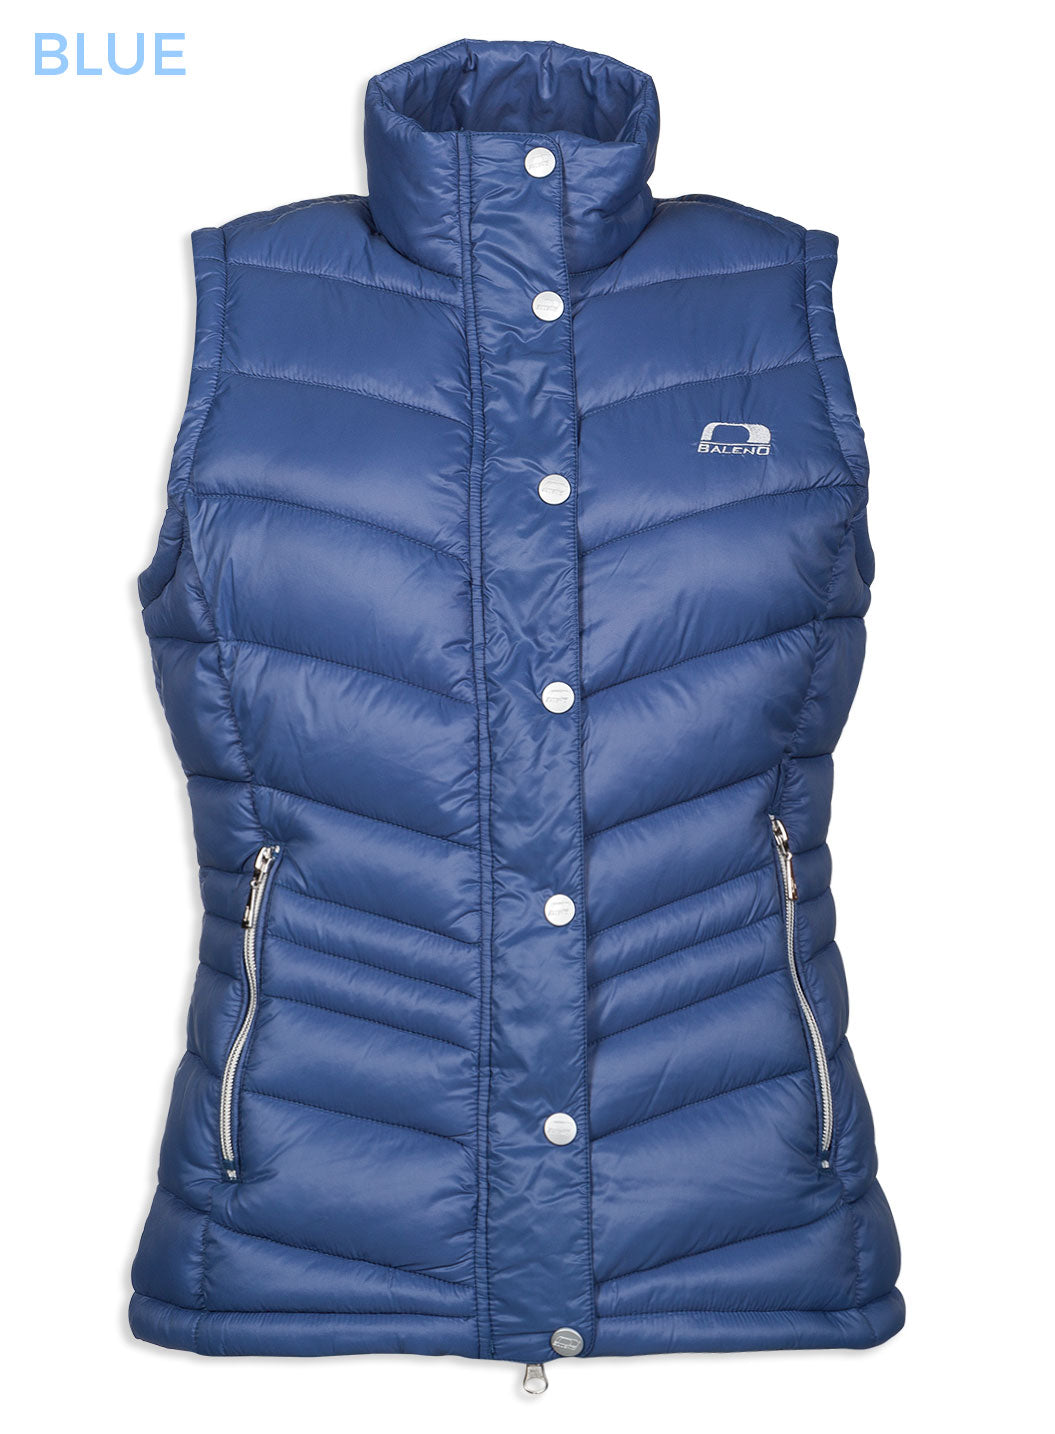 Astrid Ladies Quilt Waistcoat by Baleno